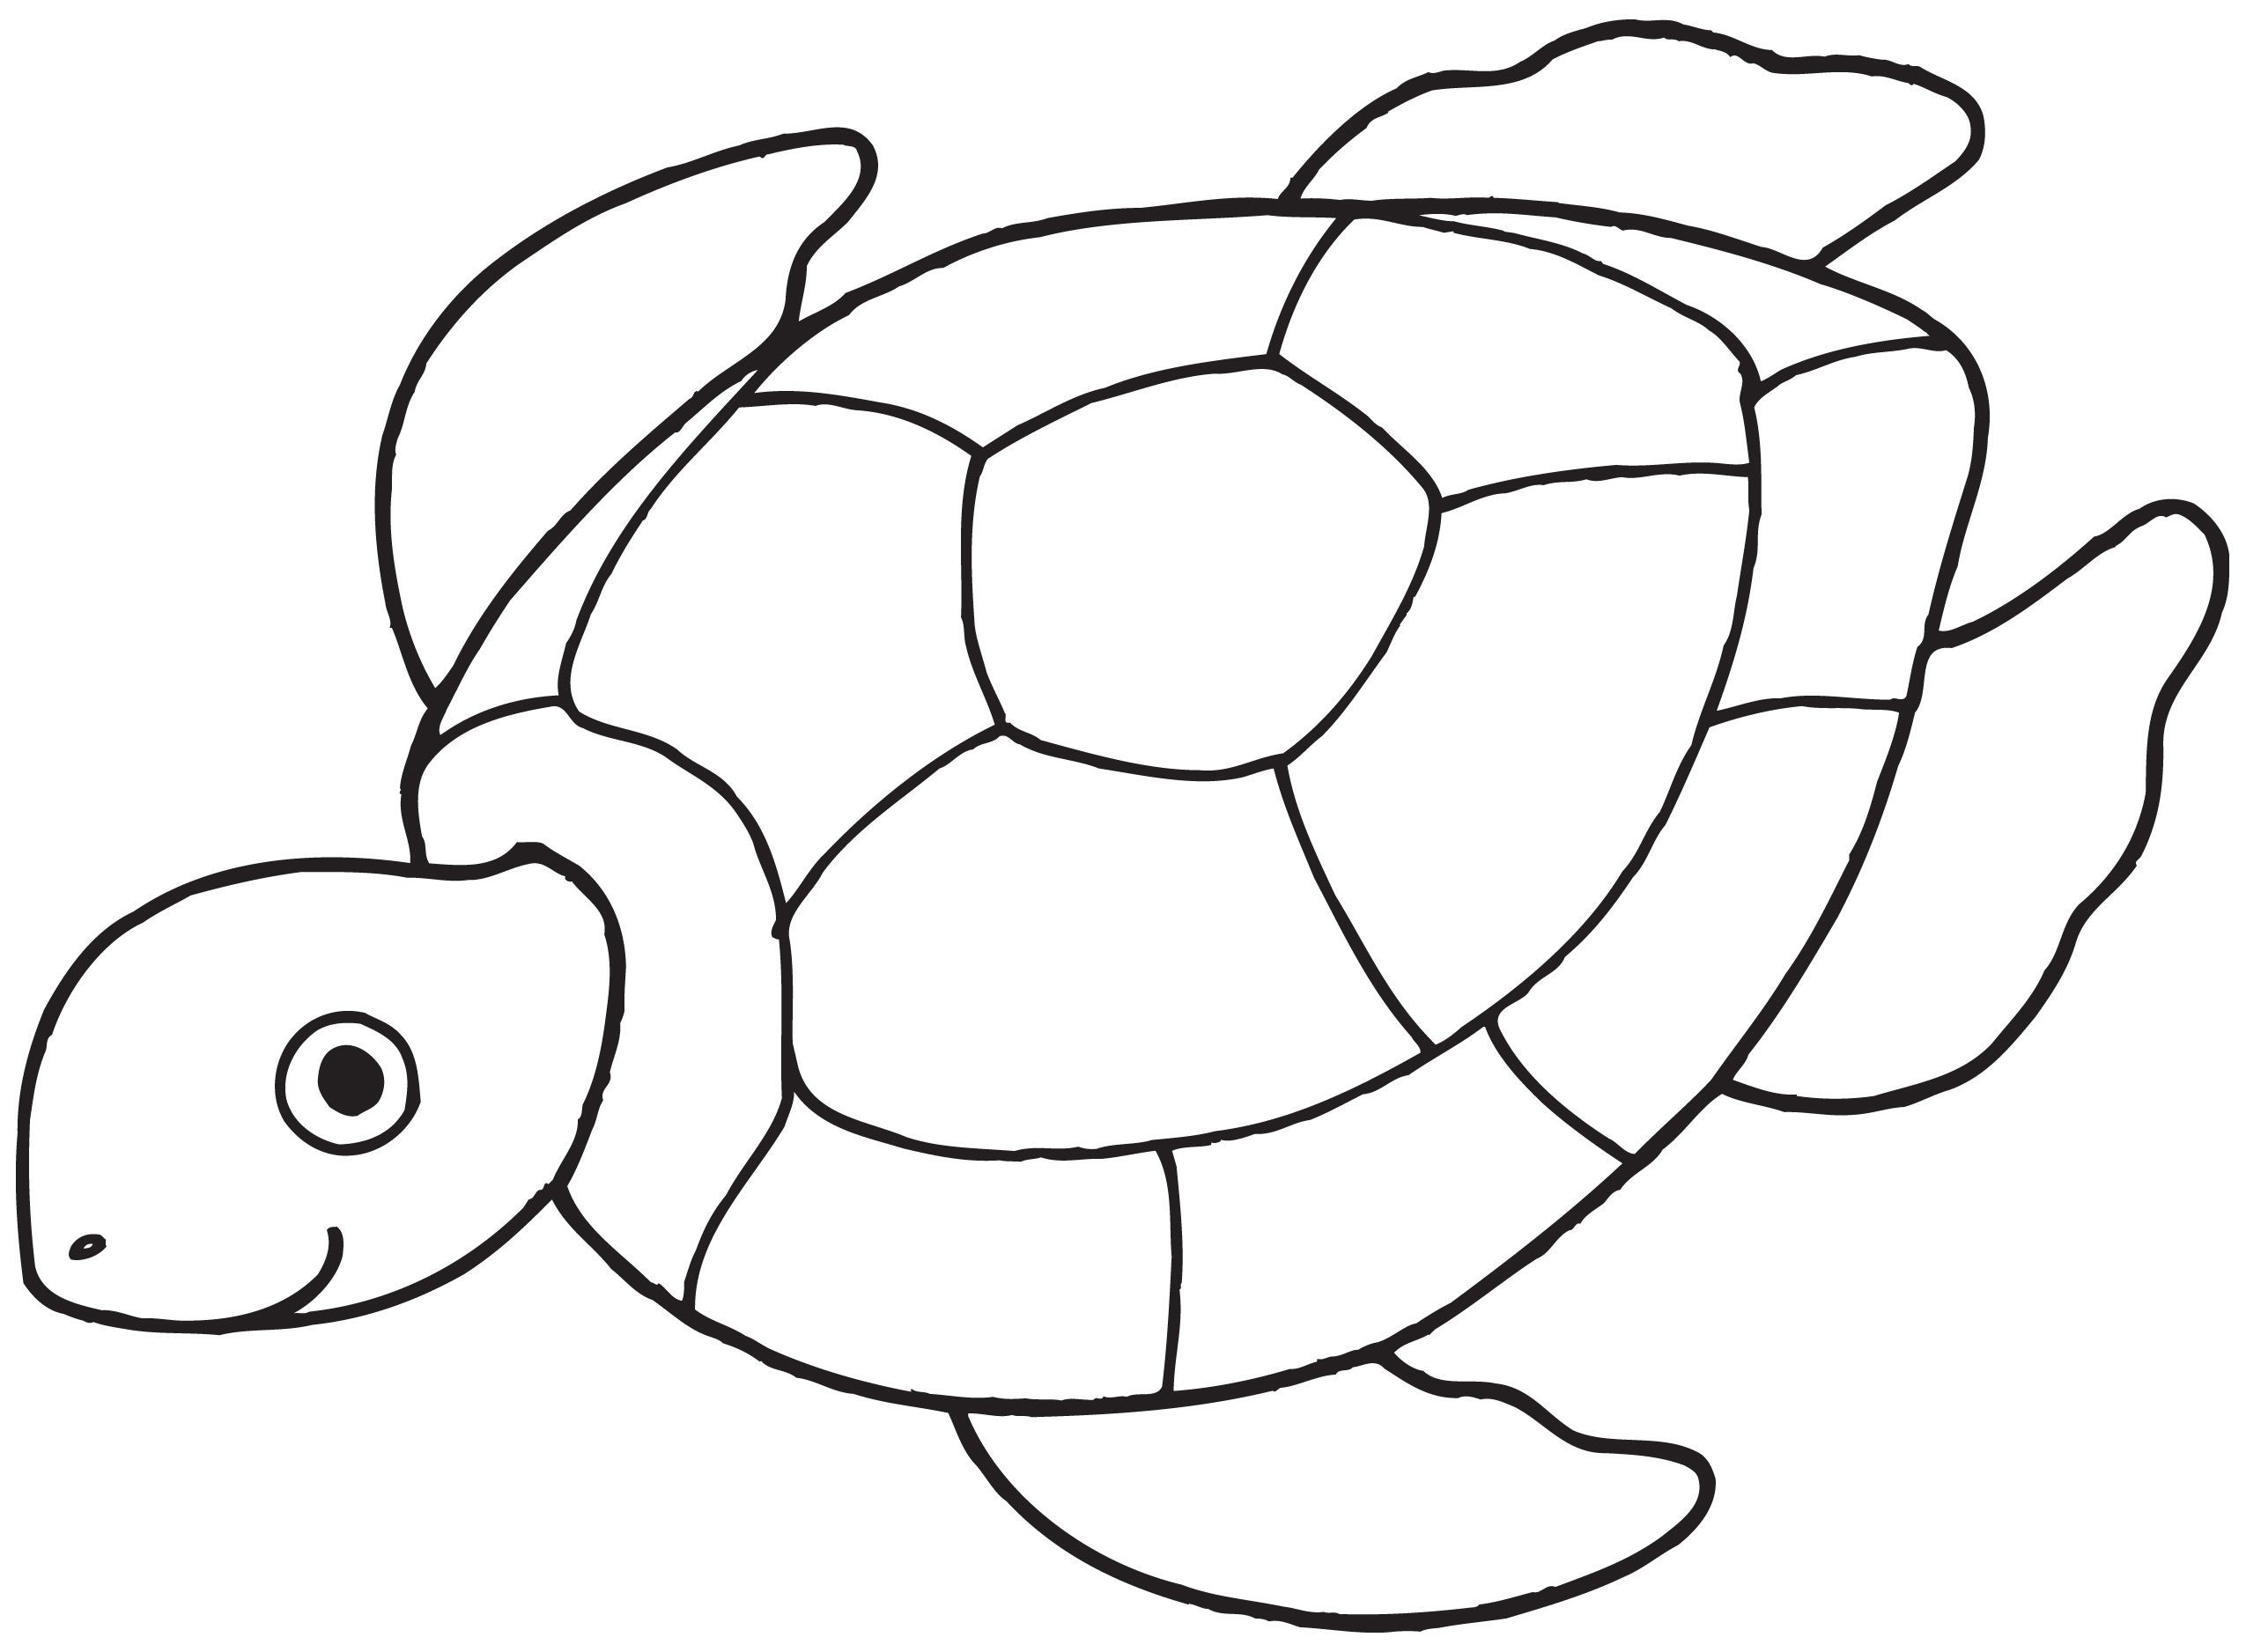 2550x1876 Turtle Shell Coloring Pages New Turtle Stencils